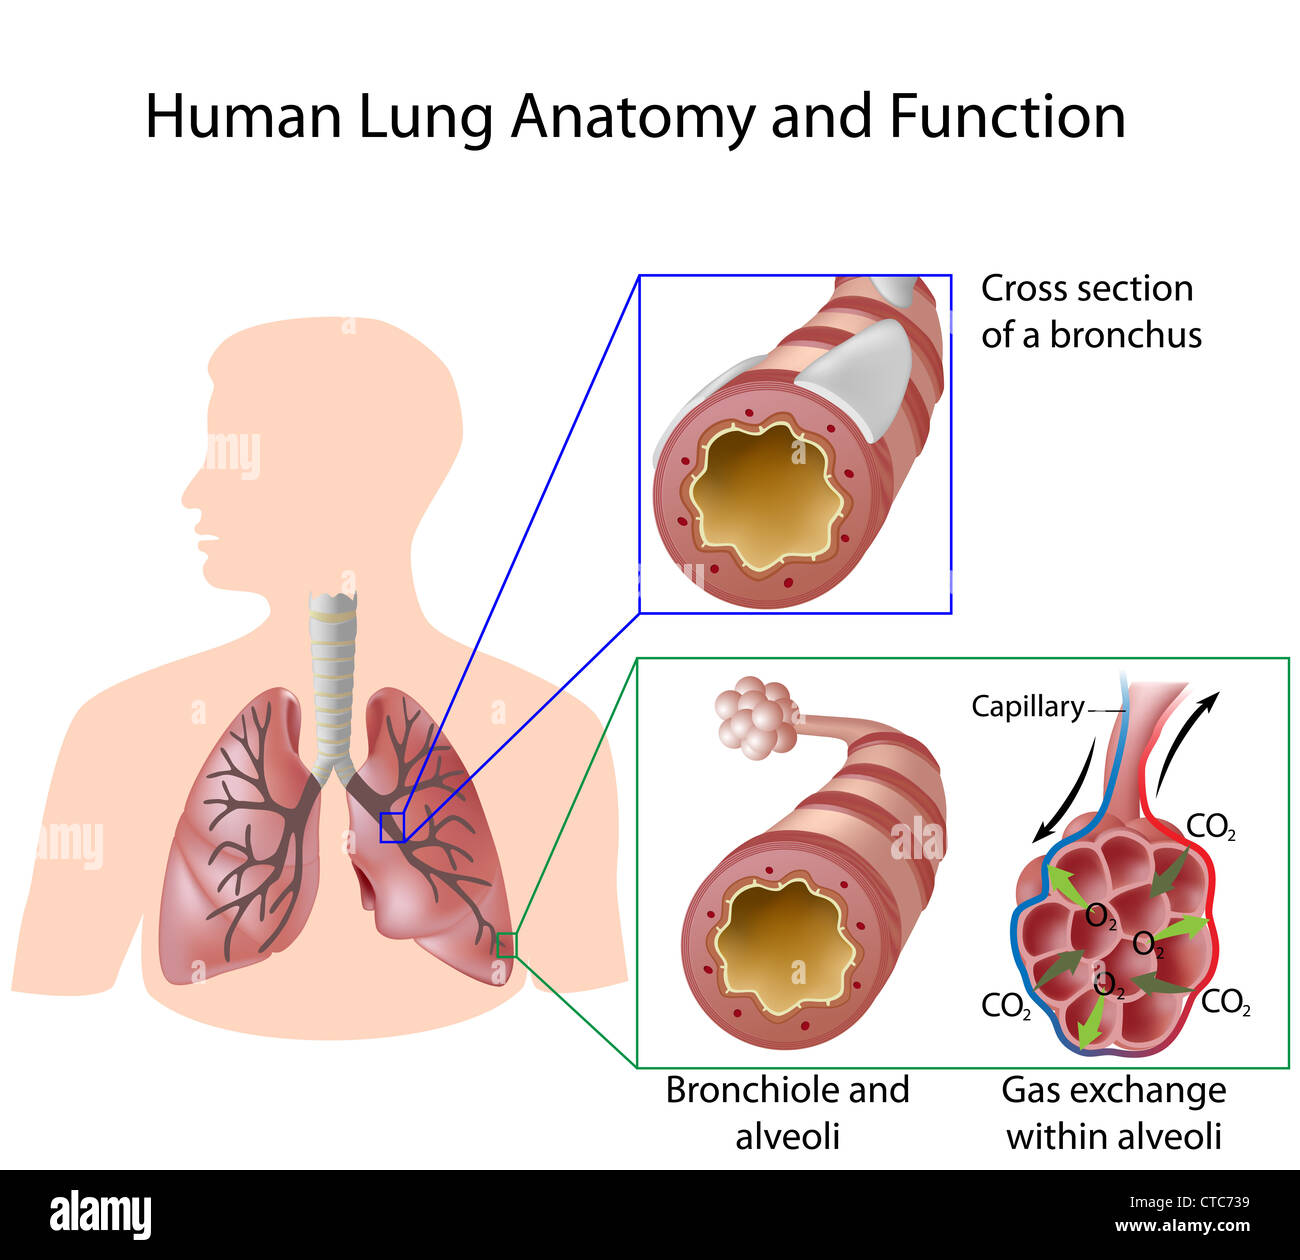 Alveoli Of Lungs Stock Photos Alveoli Of Lungs Stock Images Alamy